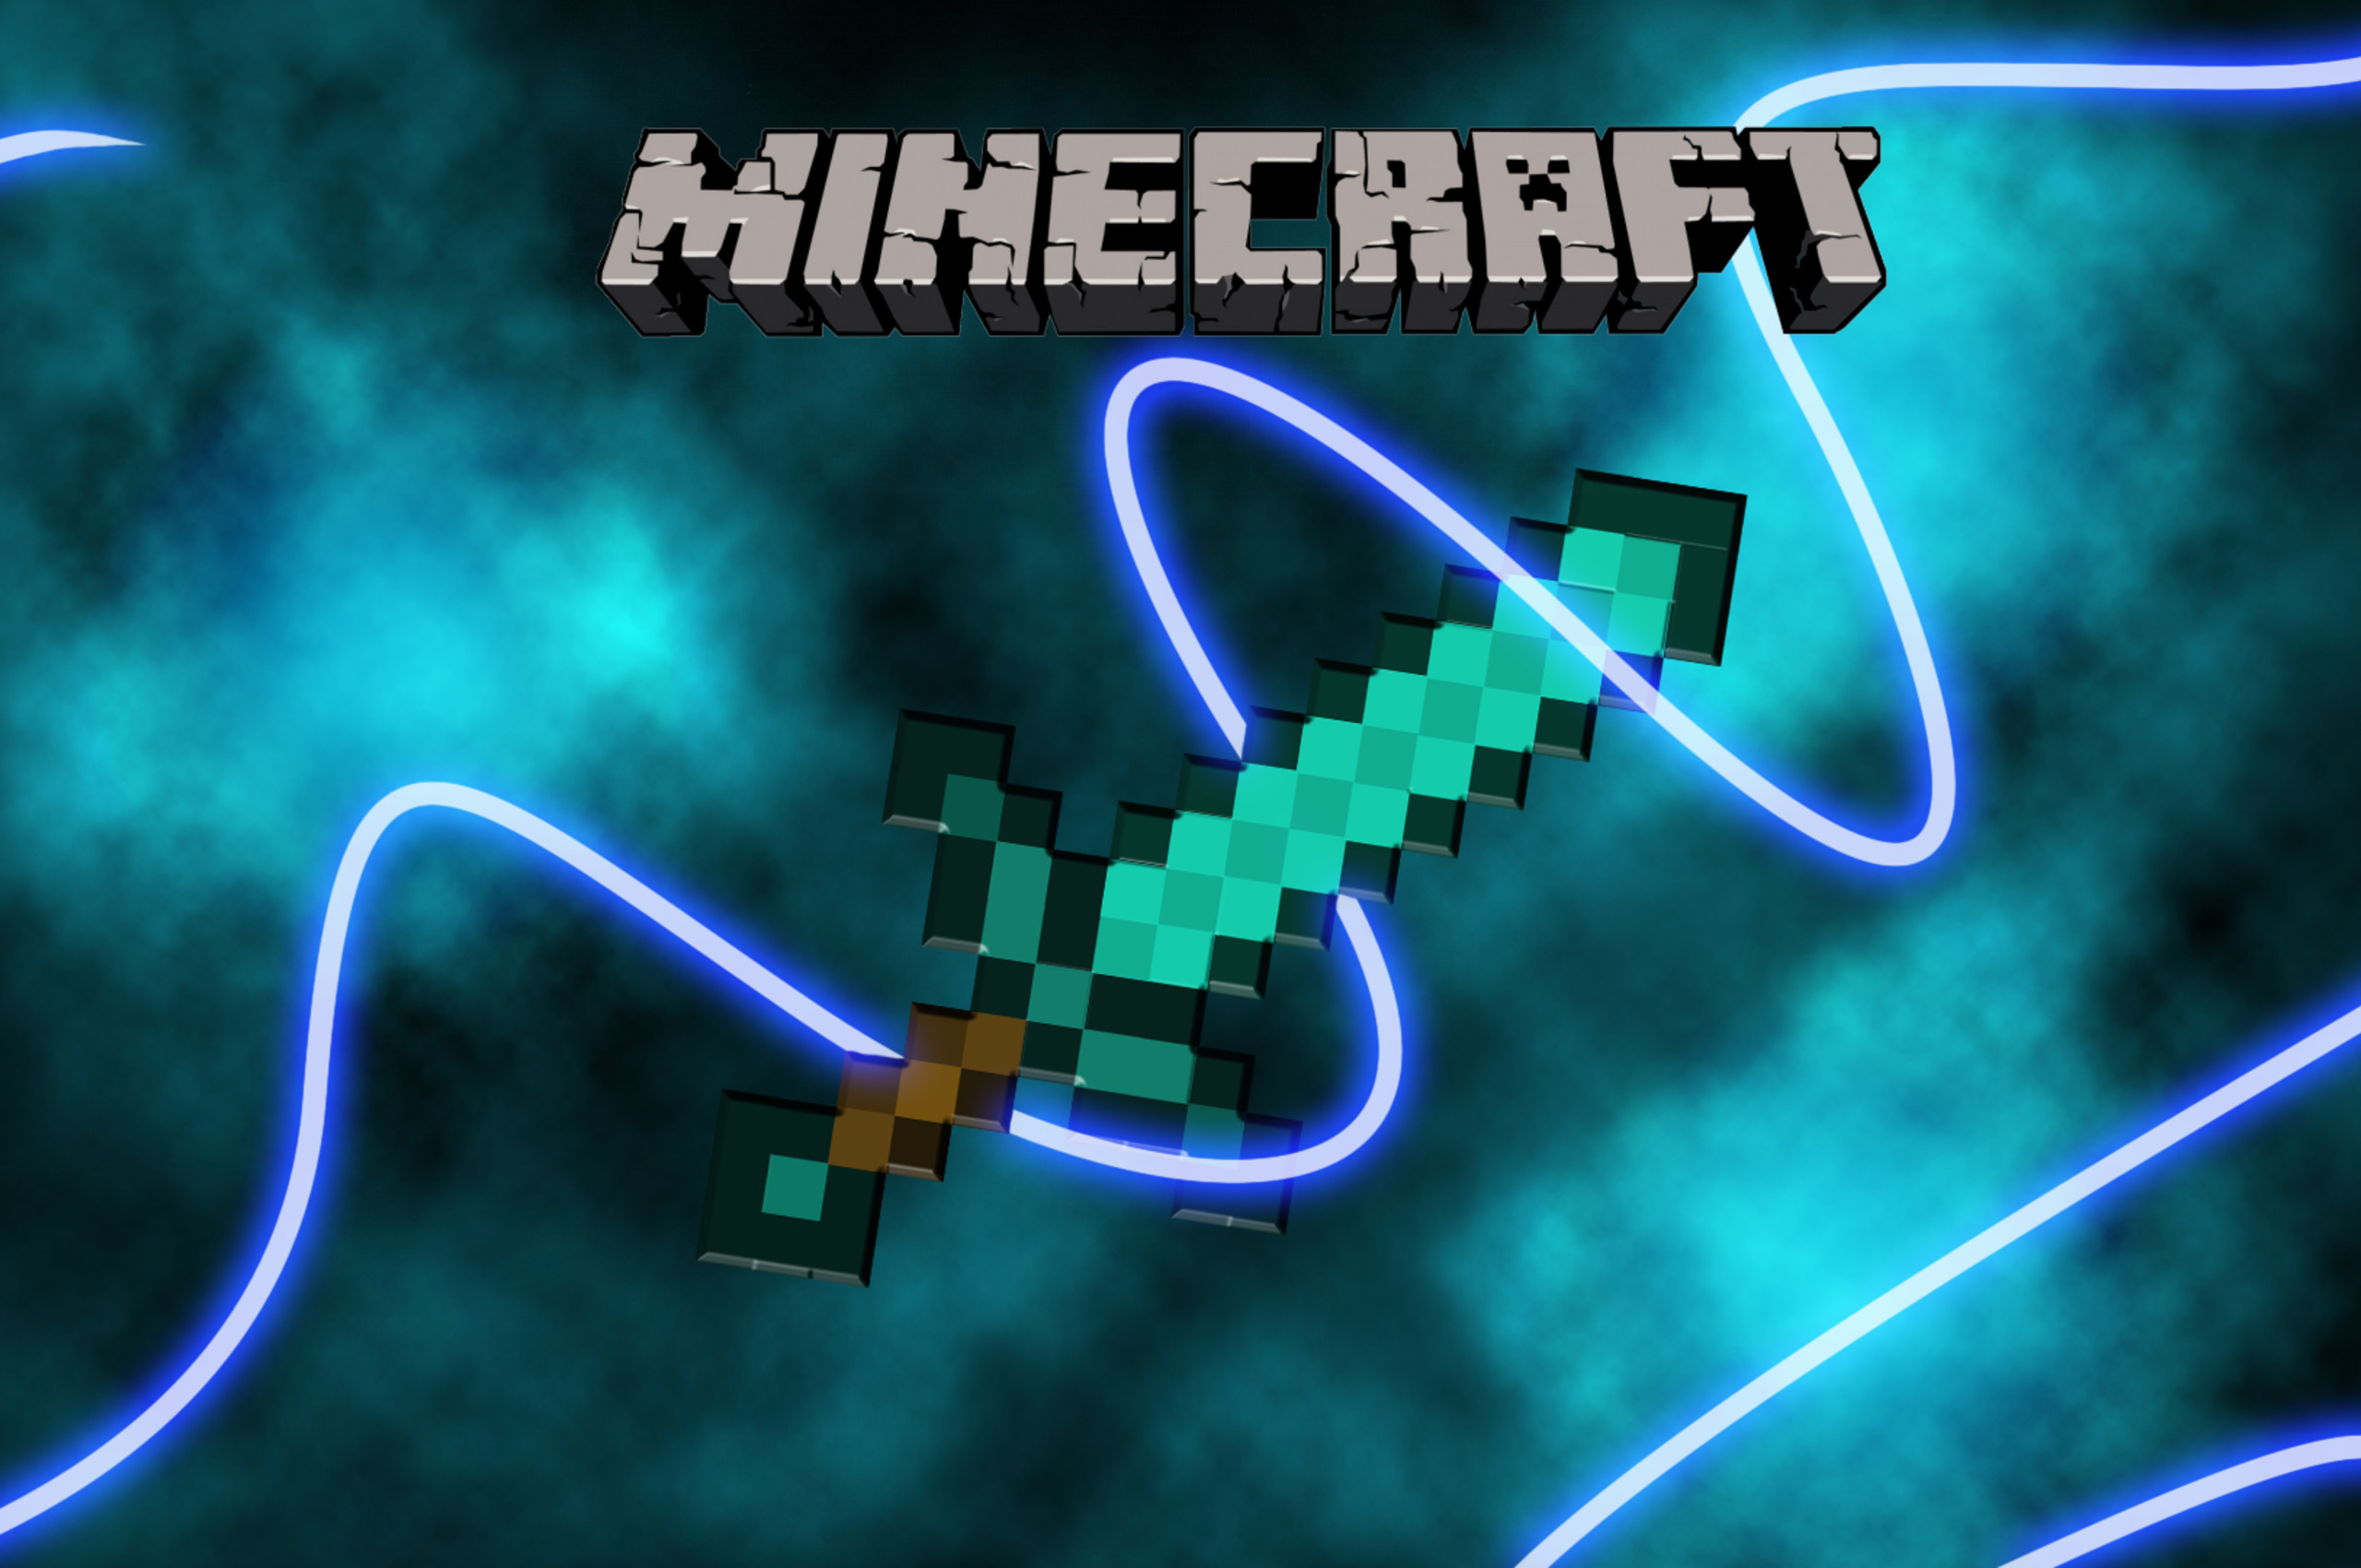 2560x1700 Minecraft 3 Chromebook Pixel Hd 4k Wallpapers Images Backgrounds Photos And Pictures